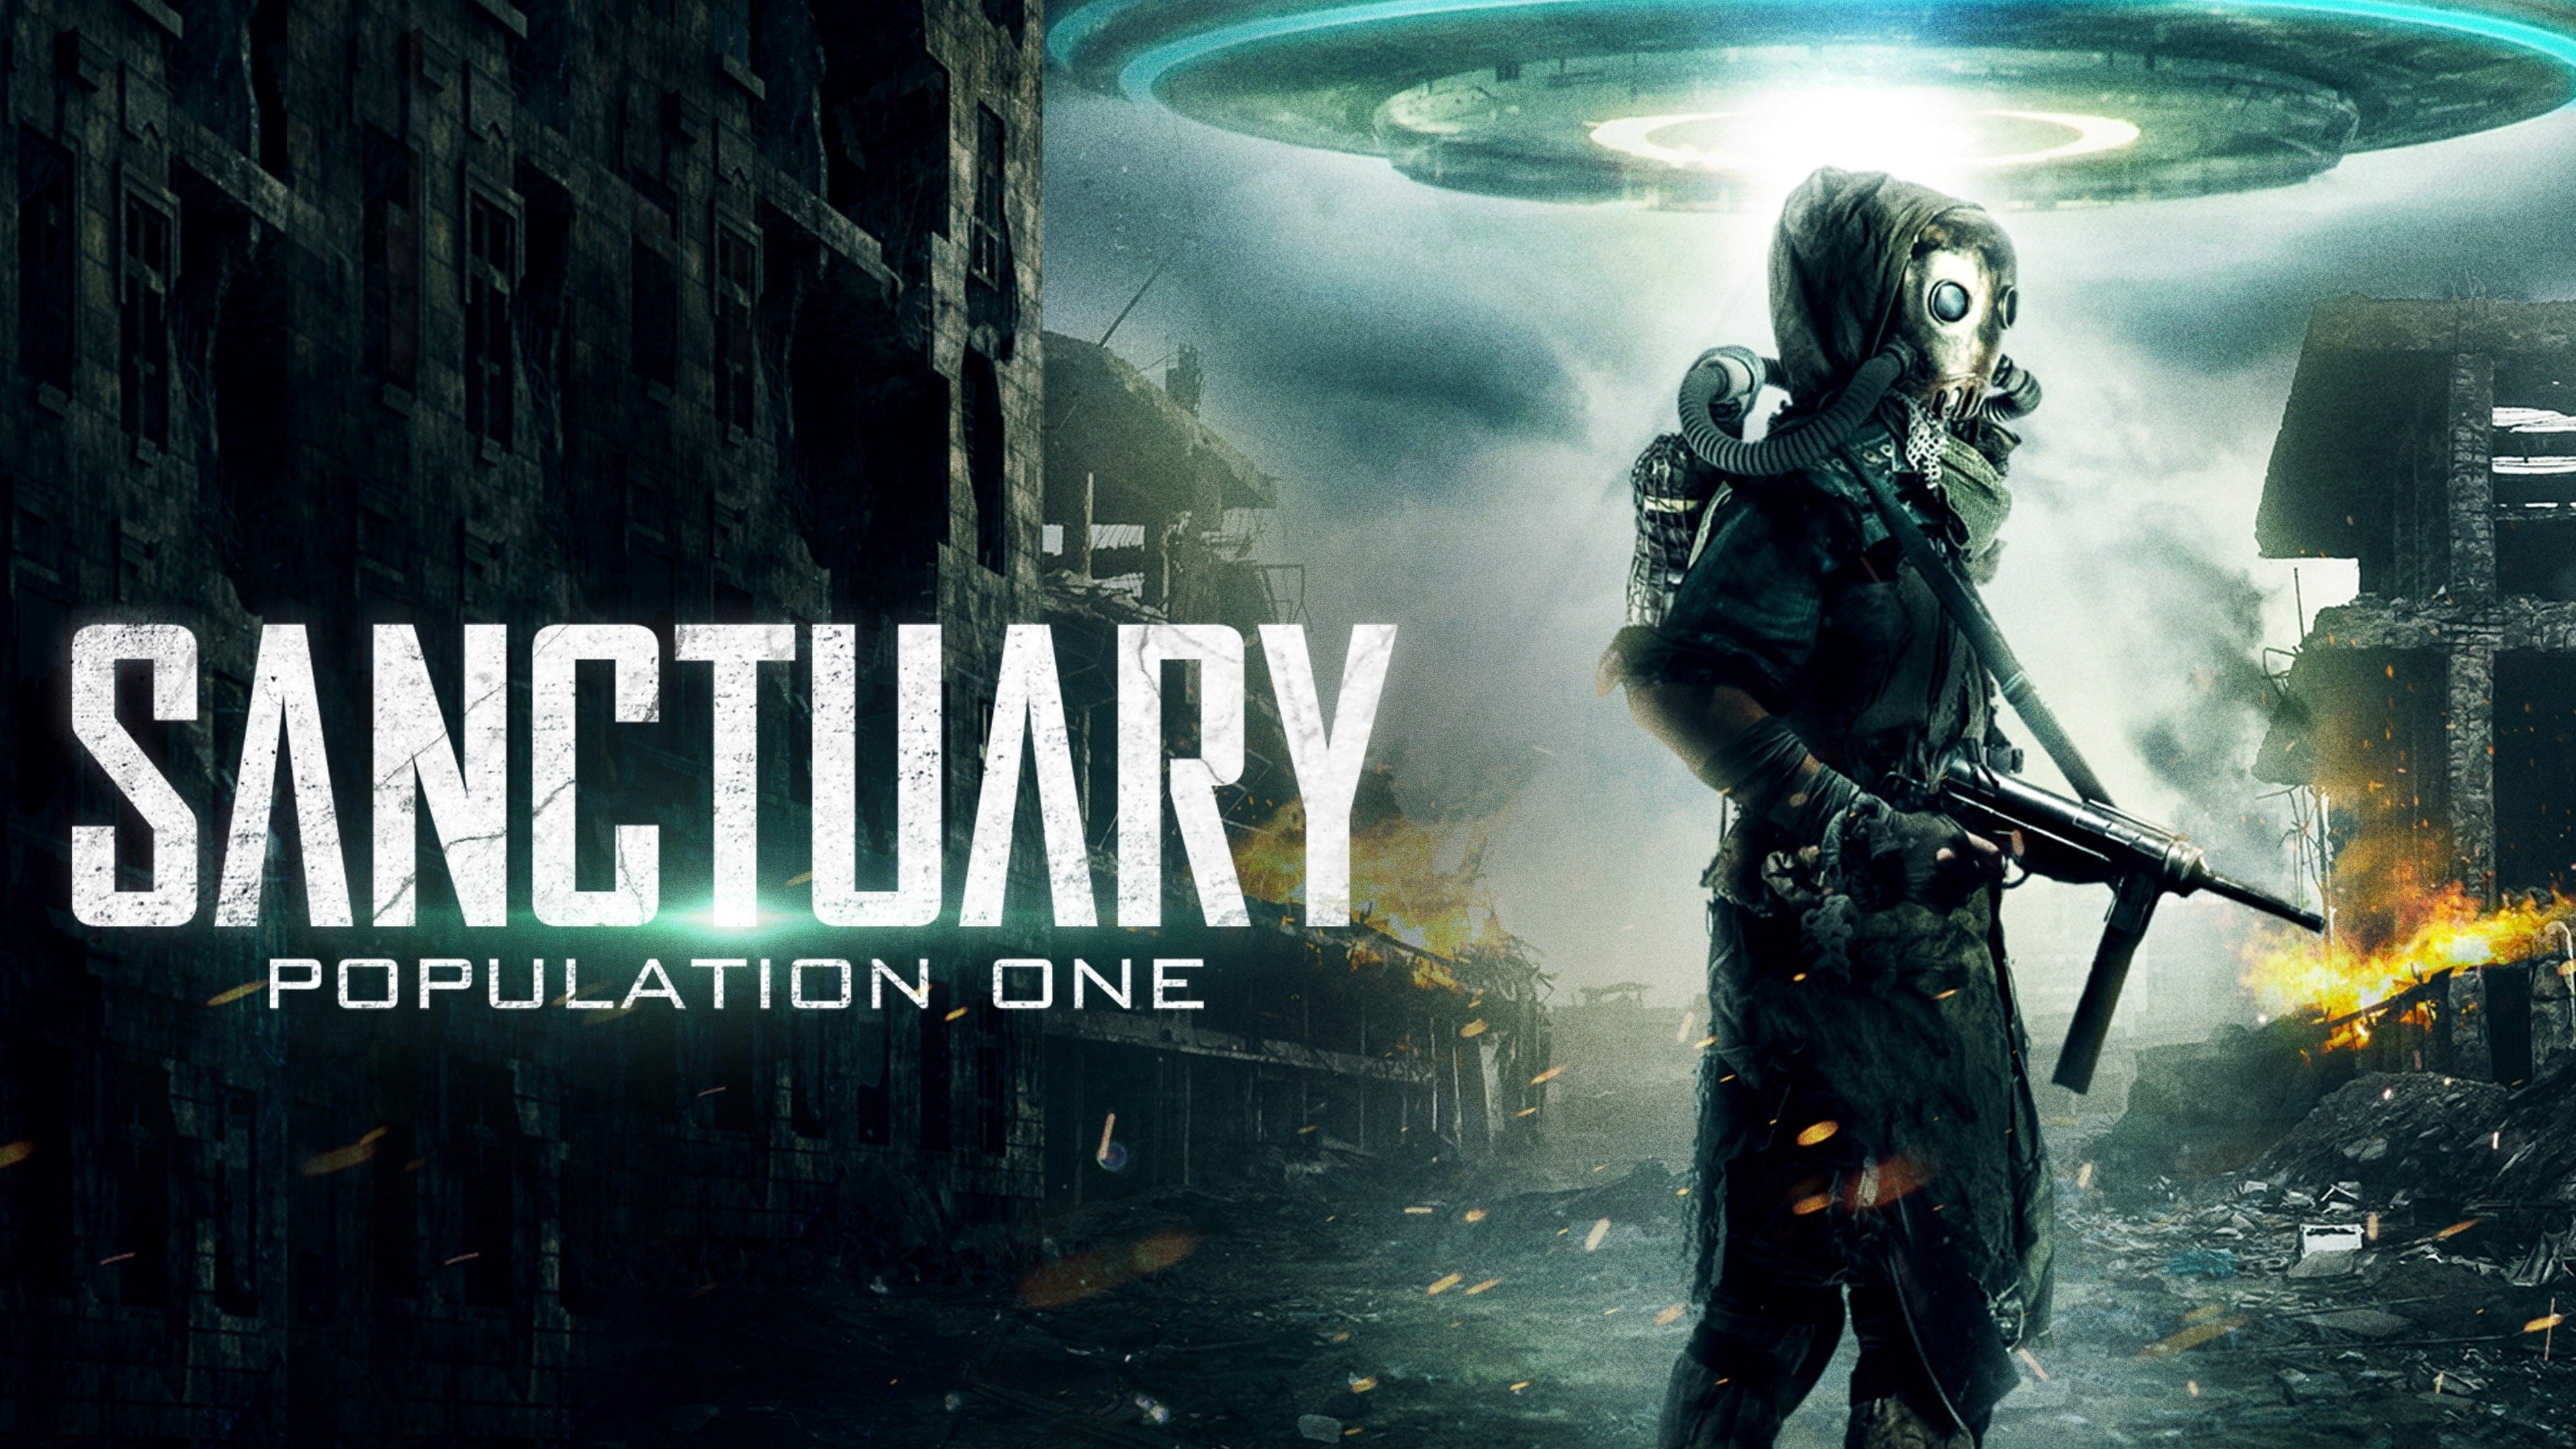 Sanctuary Population One (2019)